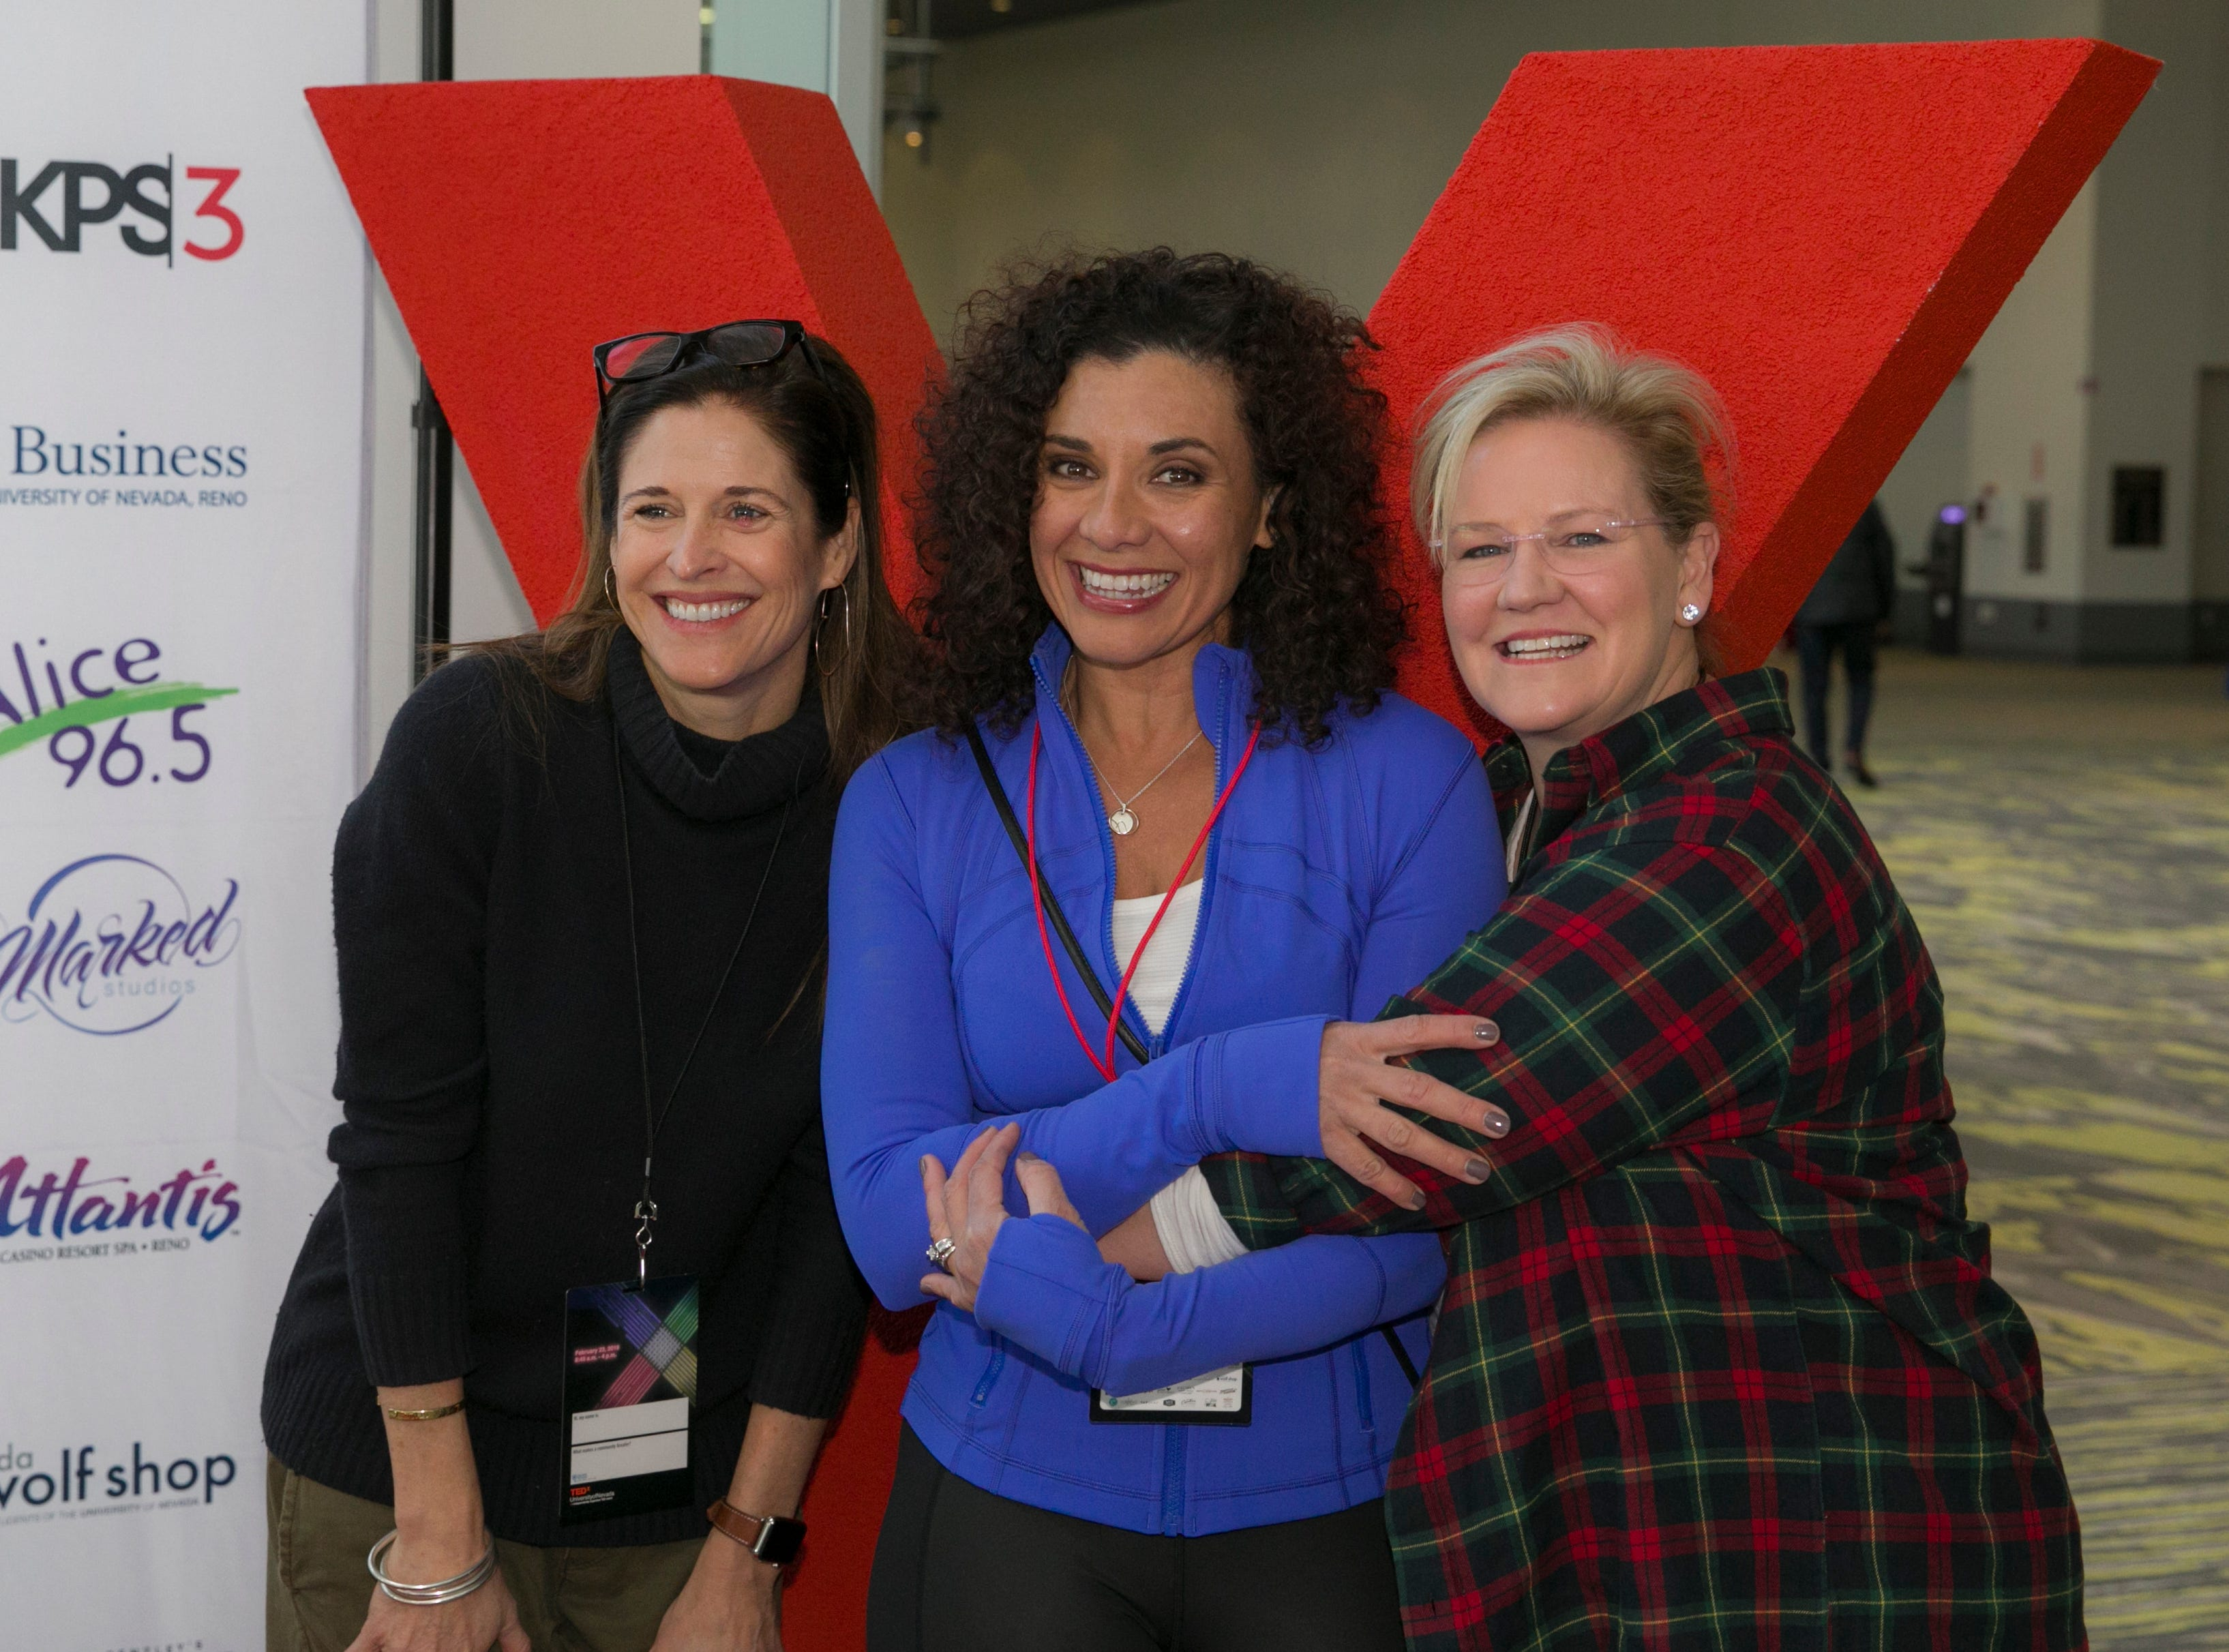 A photograph taken during TEDx University of Nevada 2019 at the Reno-Sparks Convention Center on Saturday, Feb. 23, 2019.